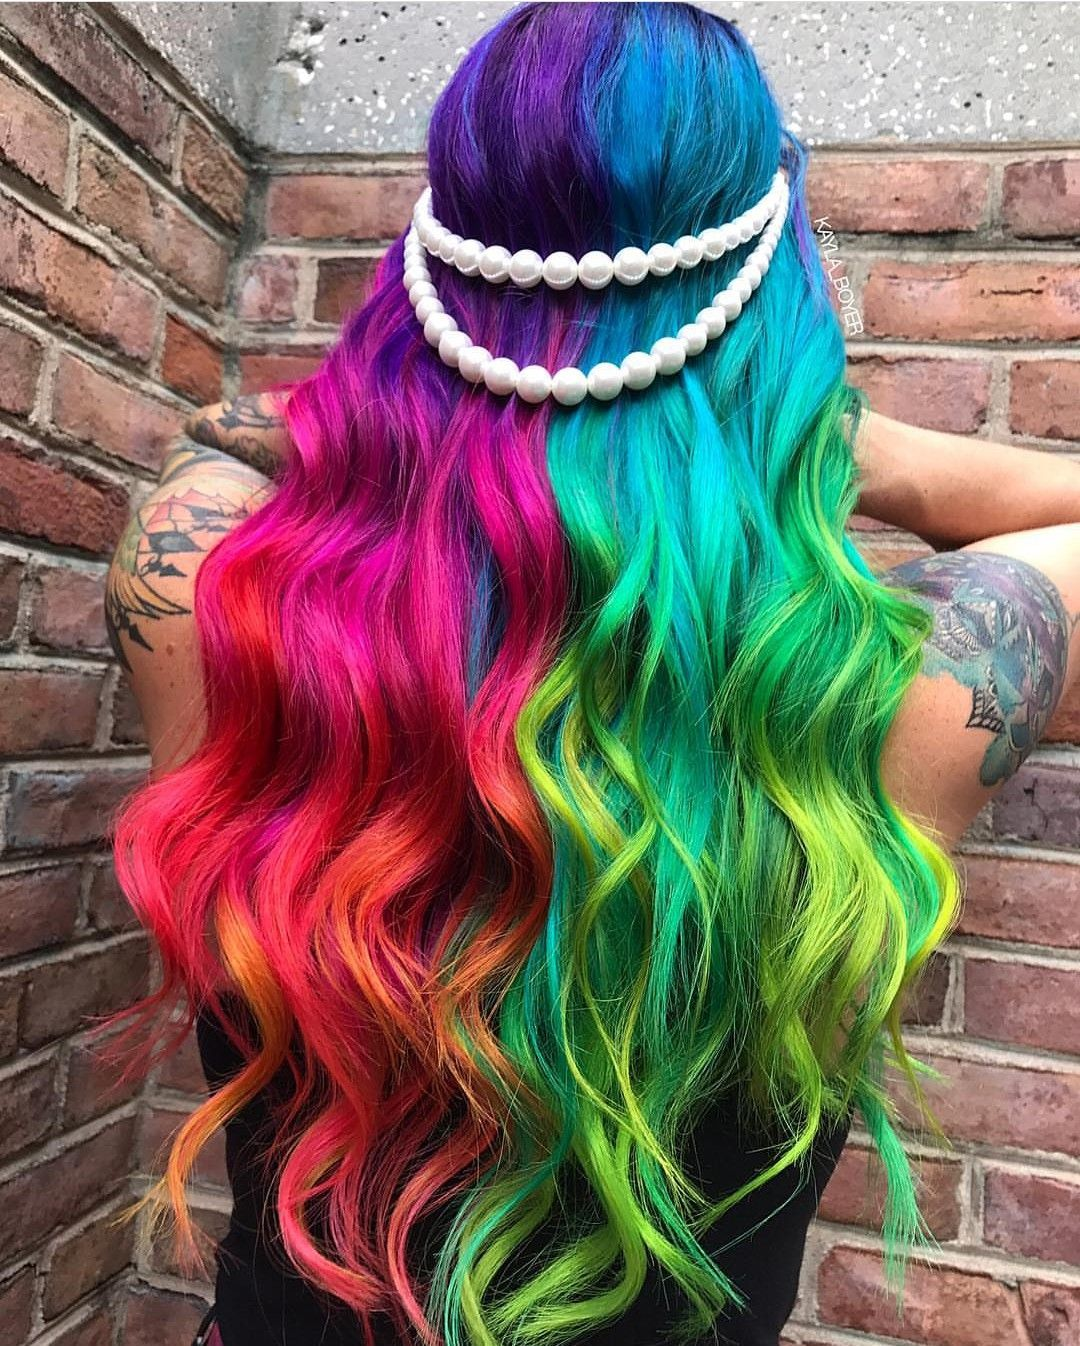 52 Ombre Rainbow Hair Colors To Try 2: Hair Styles, Girl Hair Colors